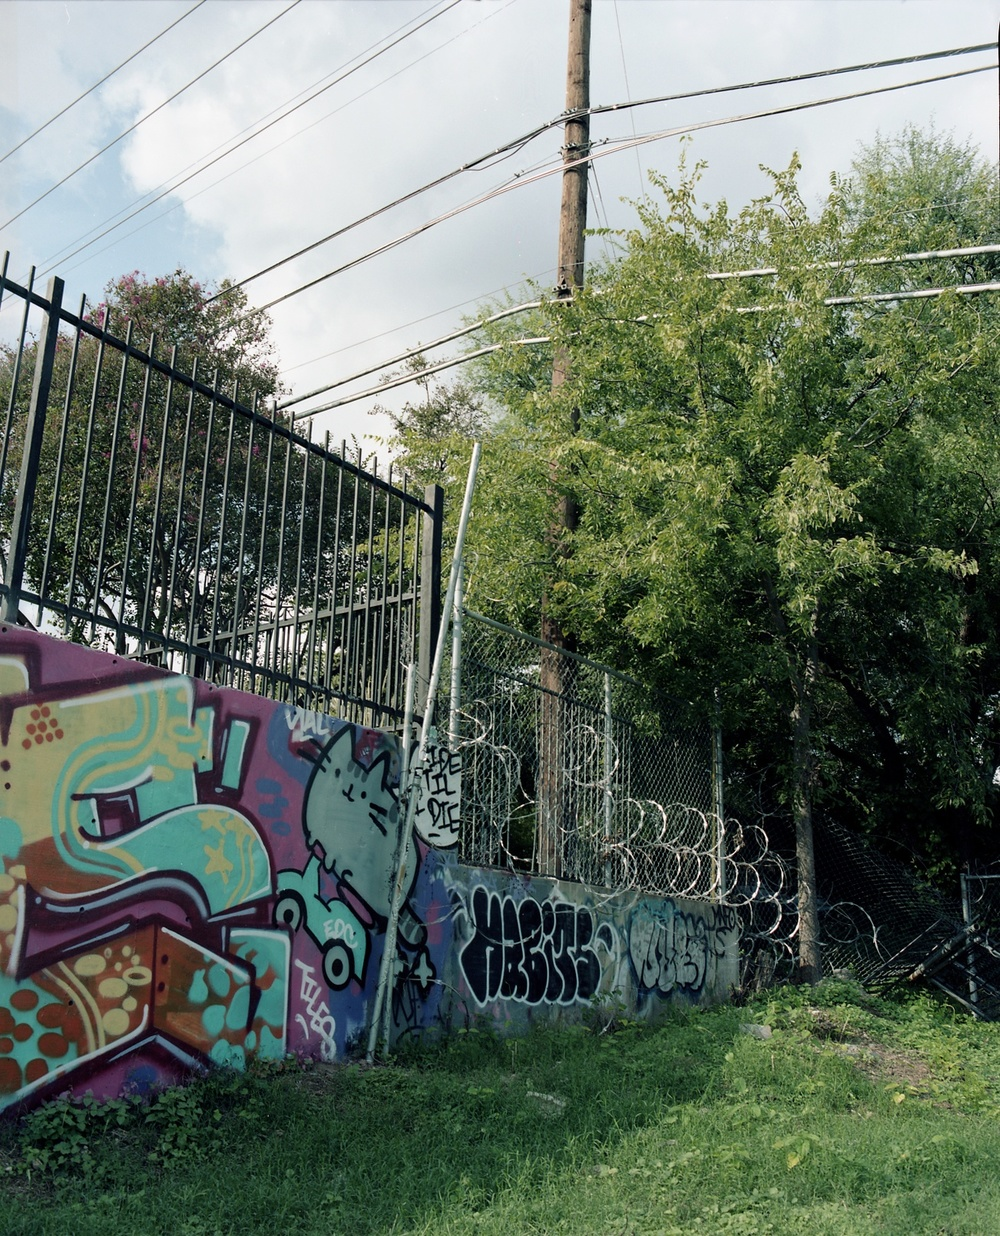 Castle Hill Graffiti, Austin, TX. 2013. C-Print.